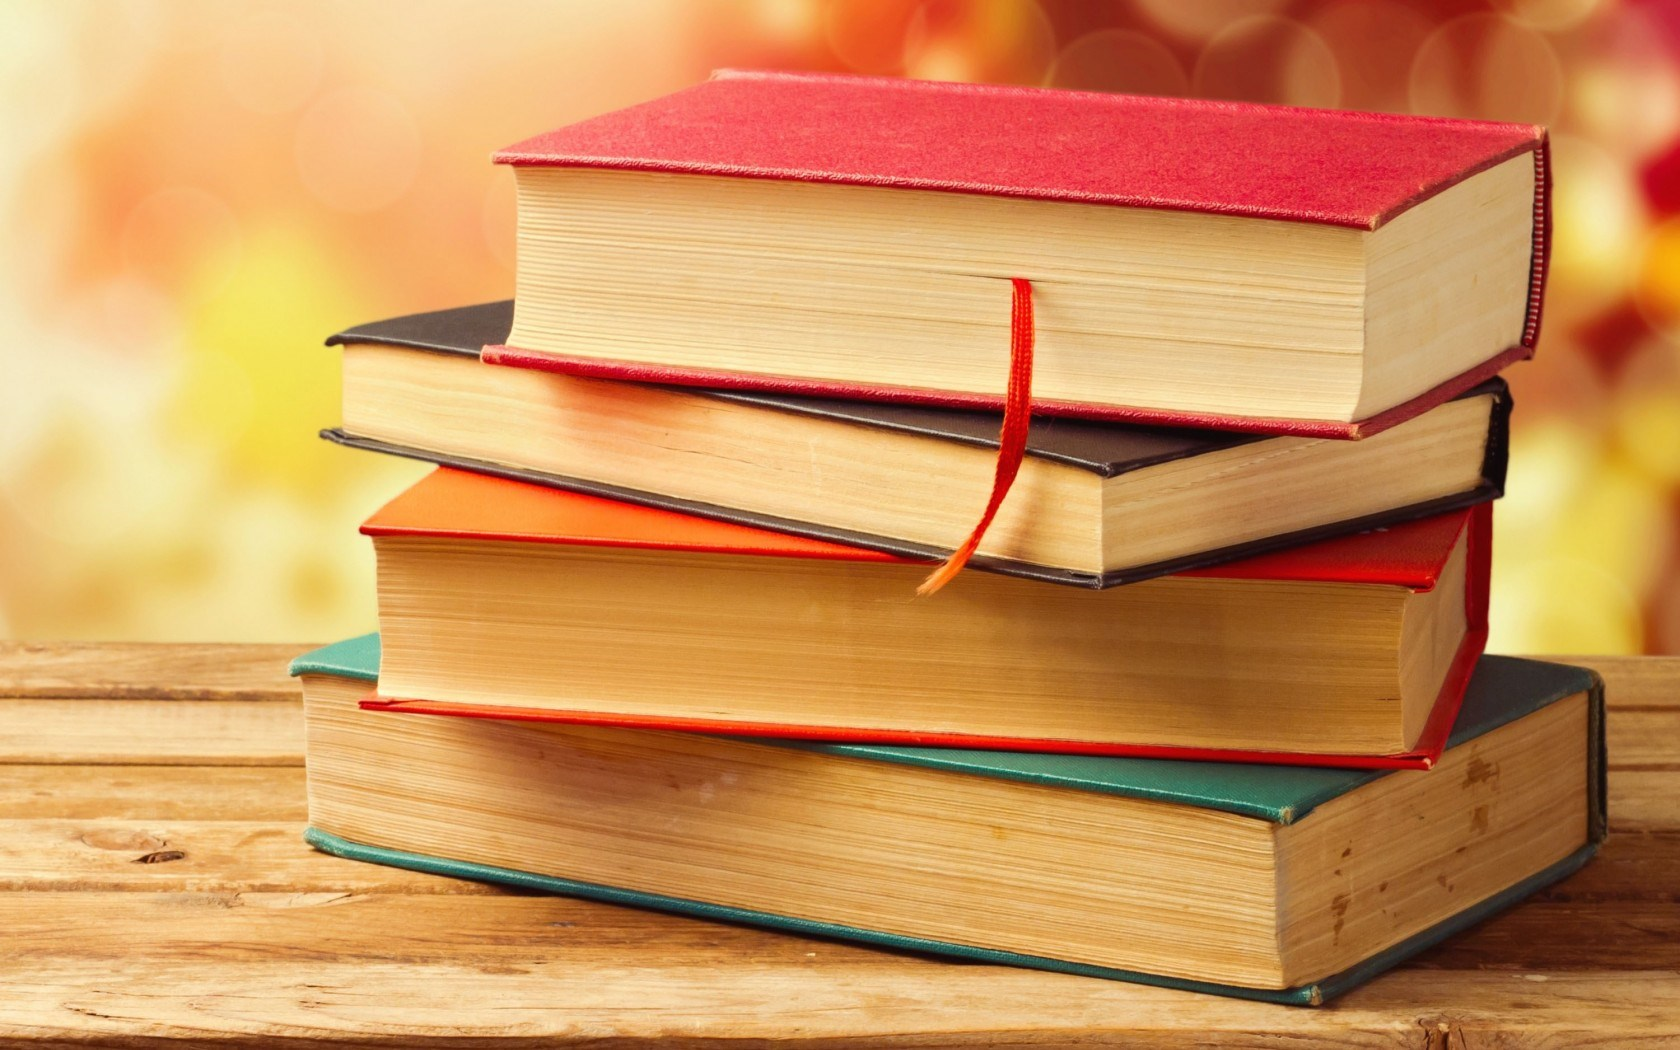 Top 7 Books that Changed the World